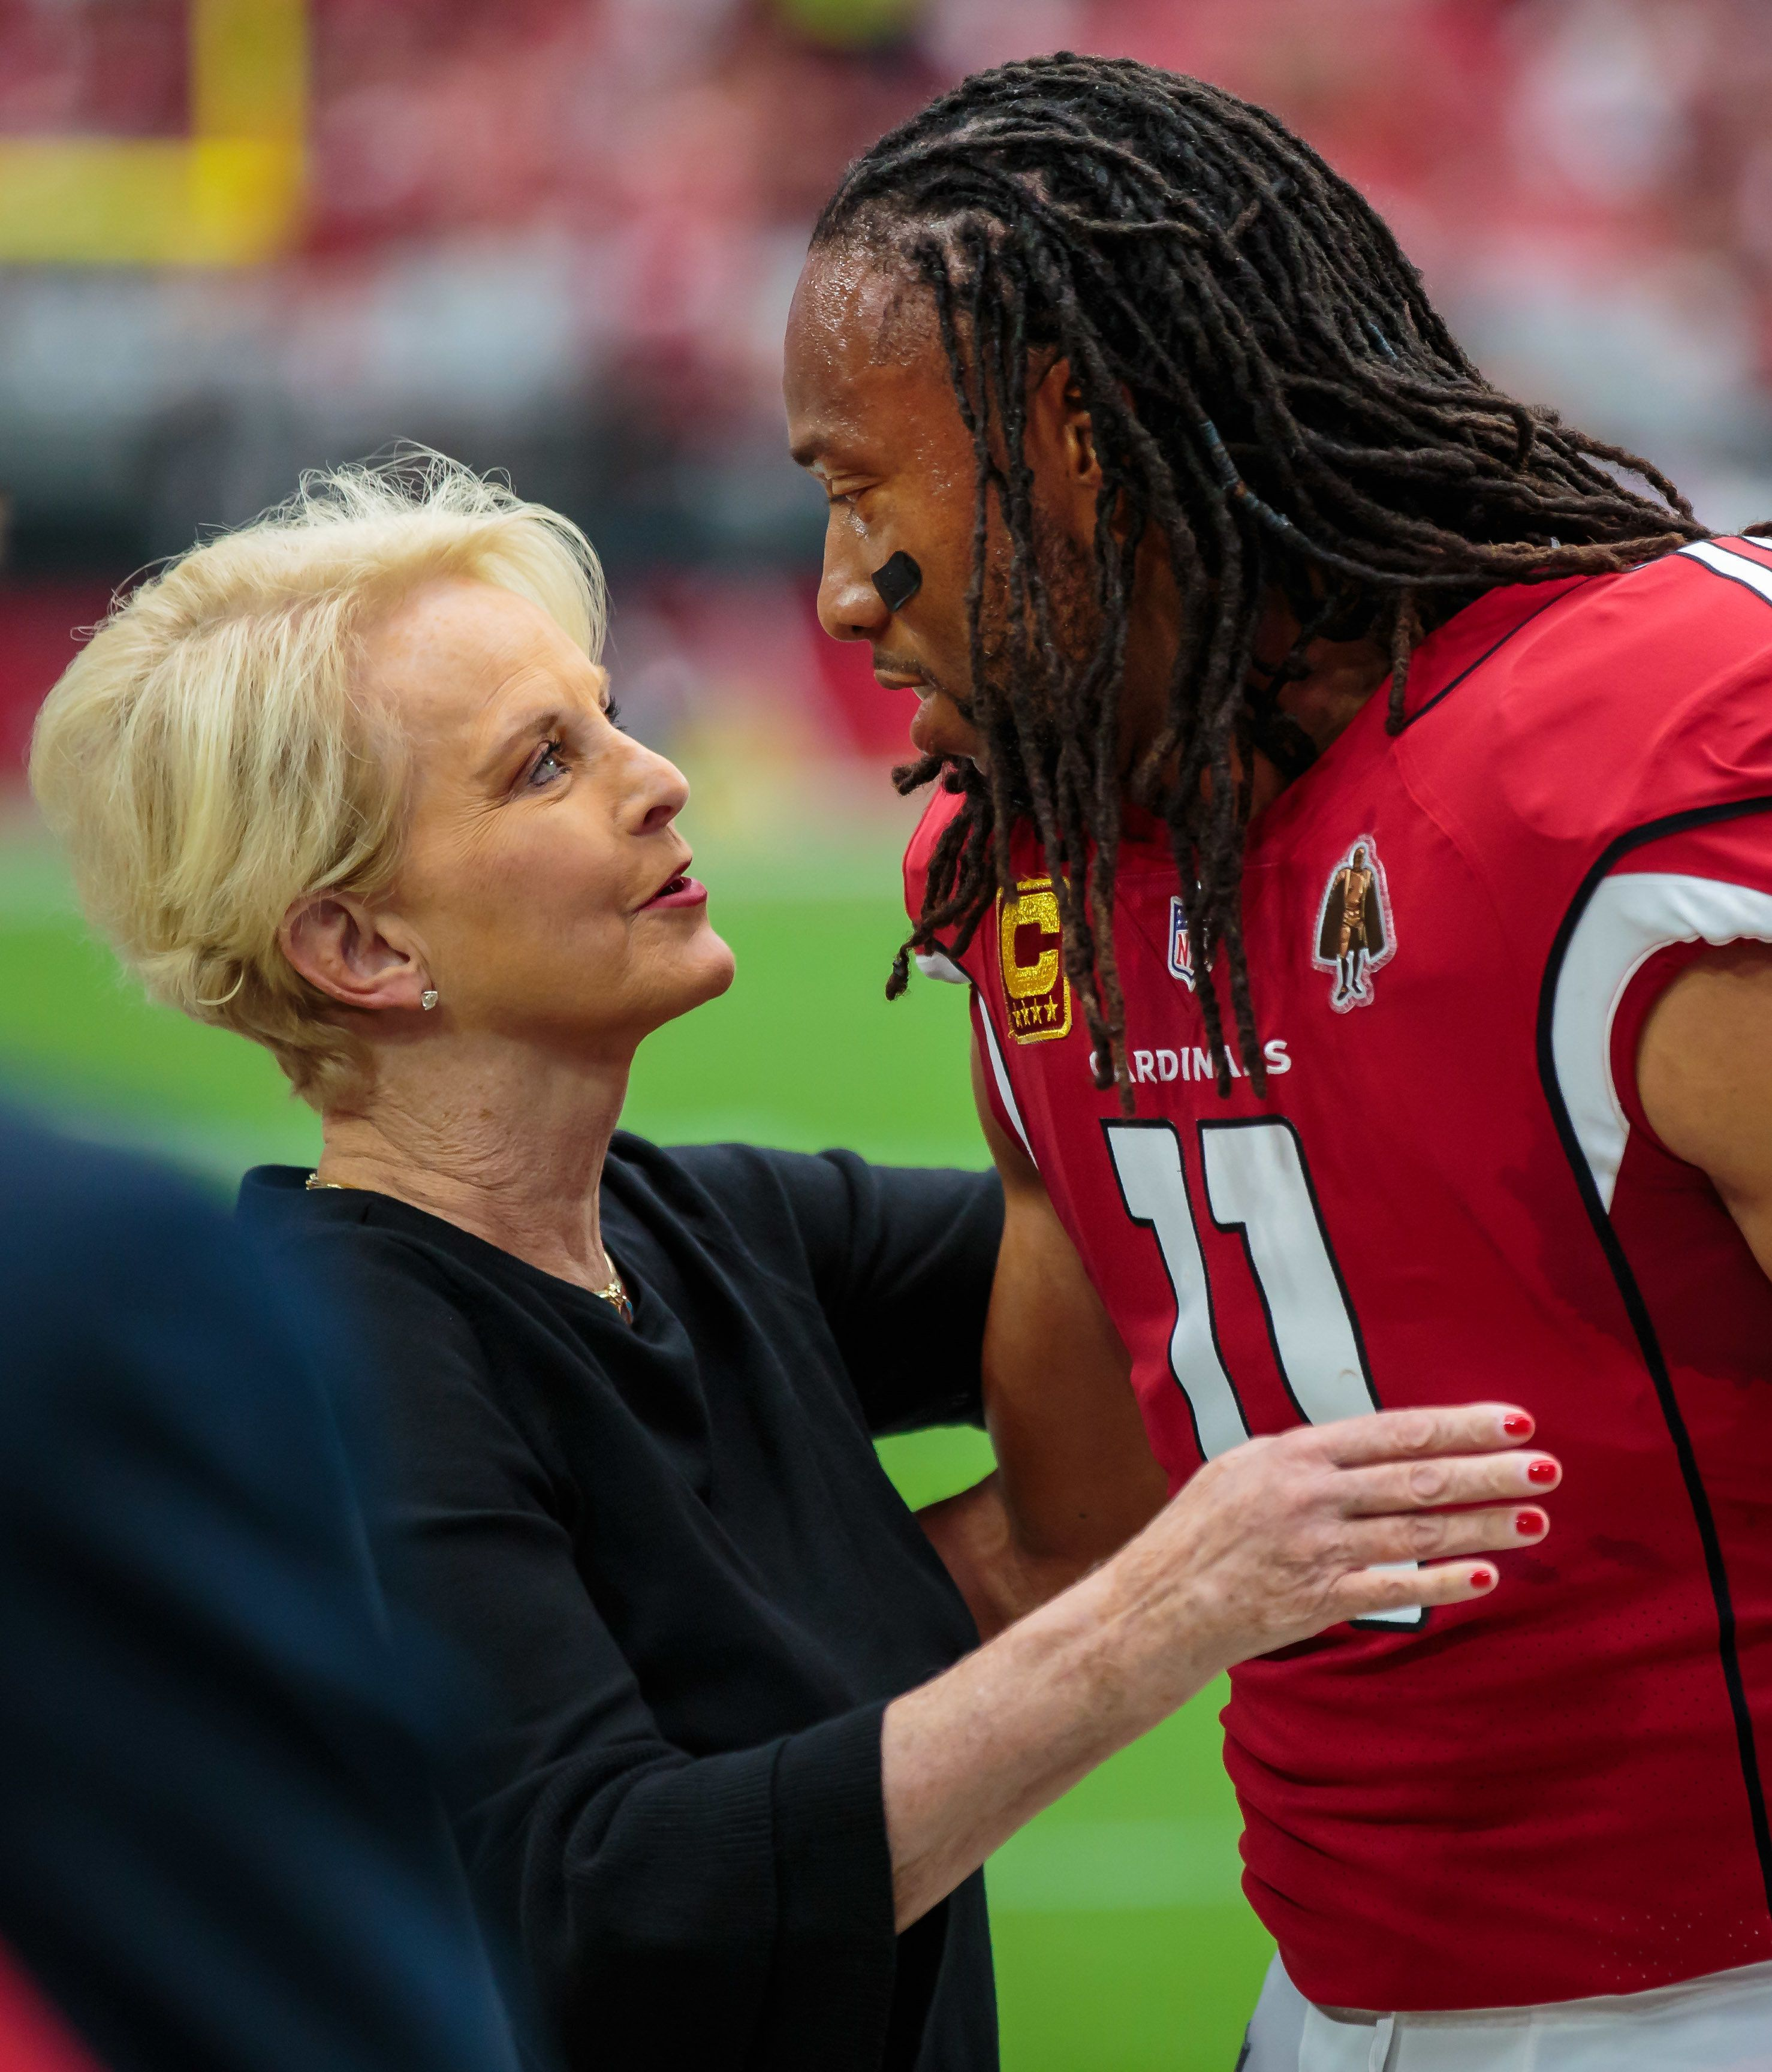 Sep 9, 2018; Glendale, AZ, USA; Arizona Cardinals wide receiver Larry Fitzgerald (11) greets Cindy McCain, widow of former Arizona republican senator John McCain prior to the game against the Washington Redskins at University of Phoenix Stadium. Mandatory Credit: Mark J. Rebilas-USA TODAY Sports